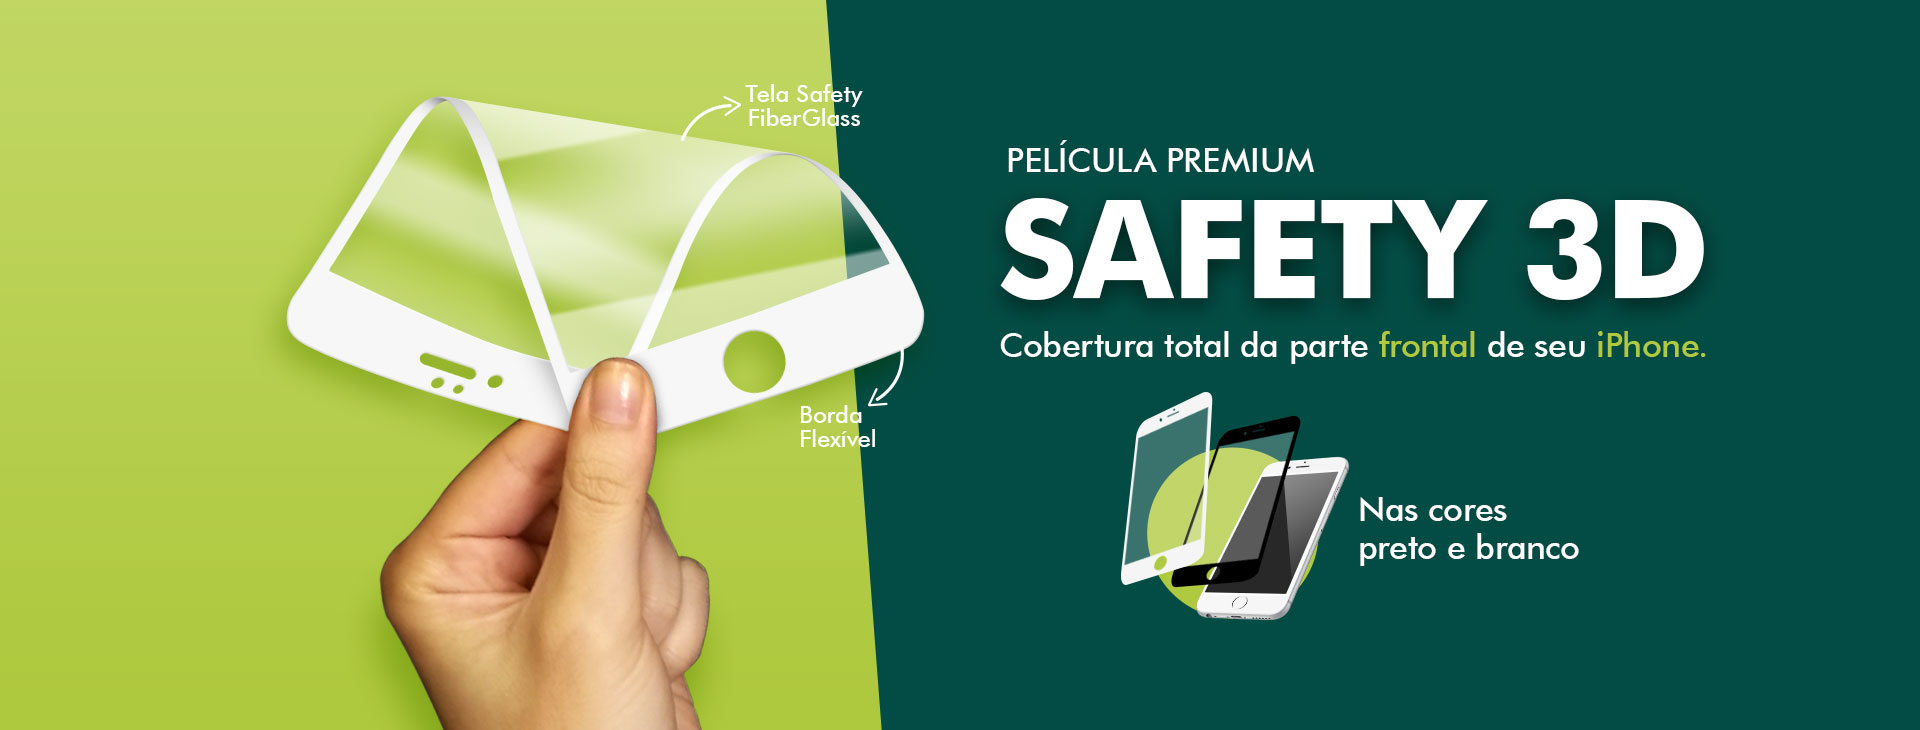 SAFETY 3D